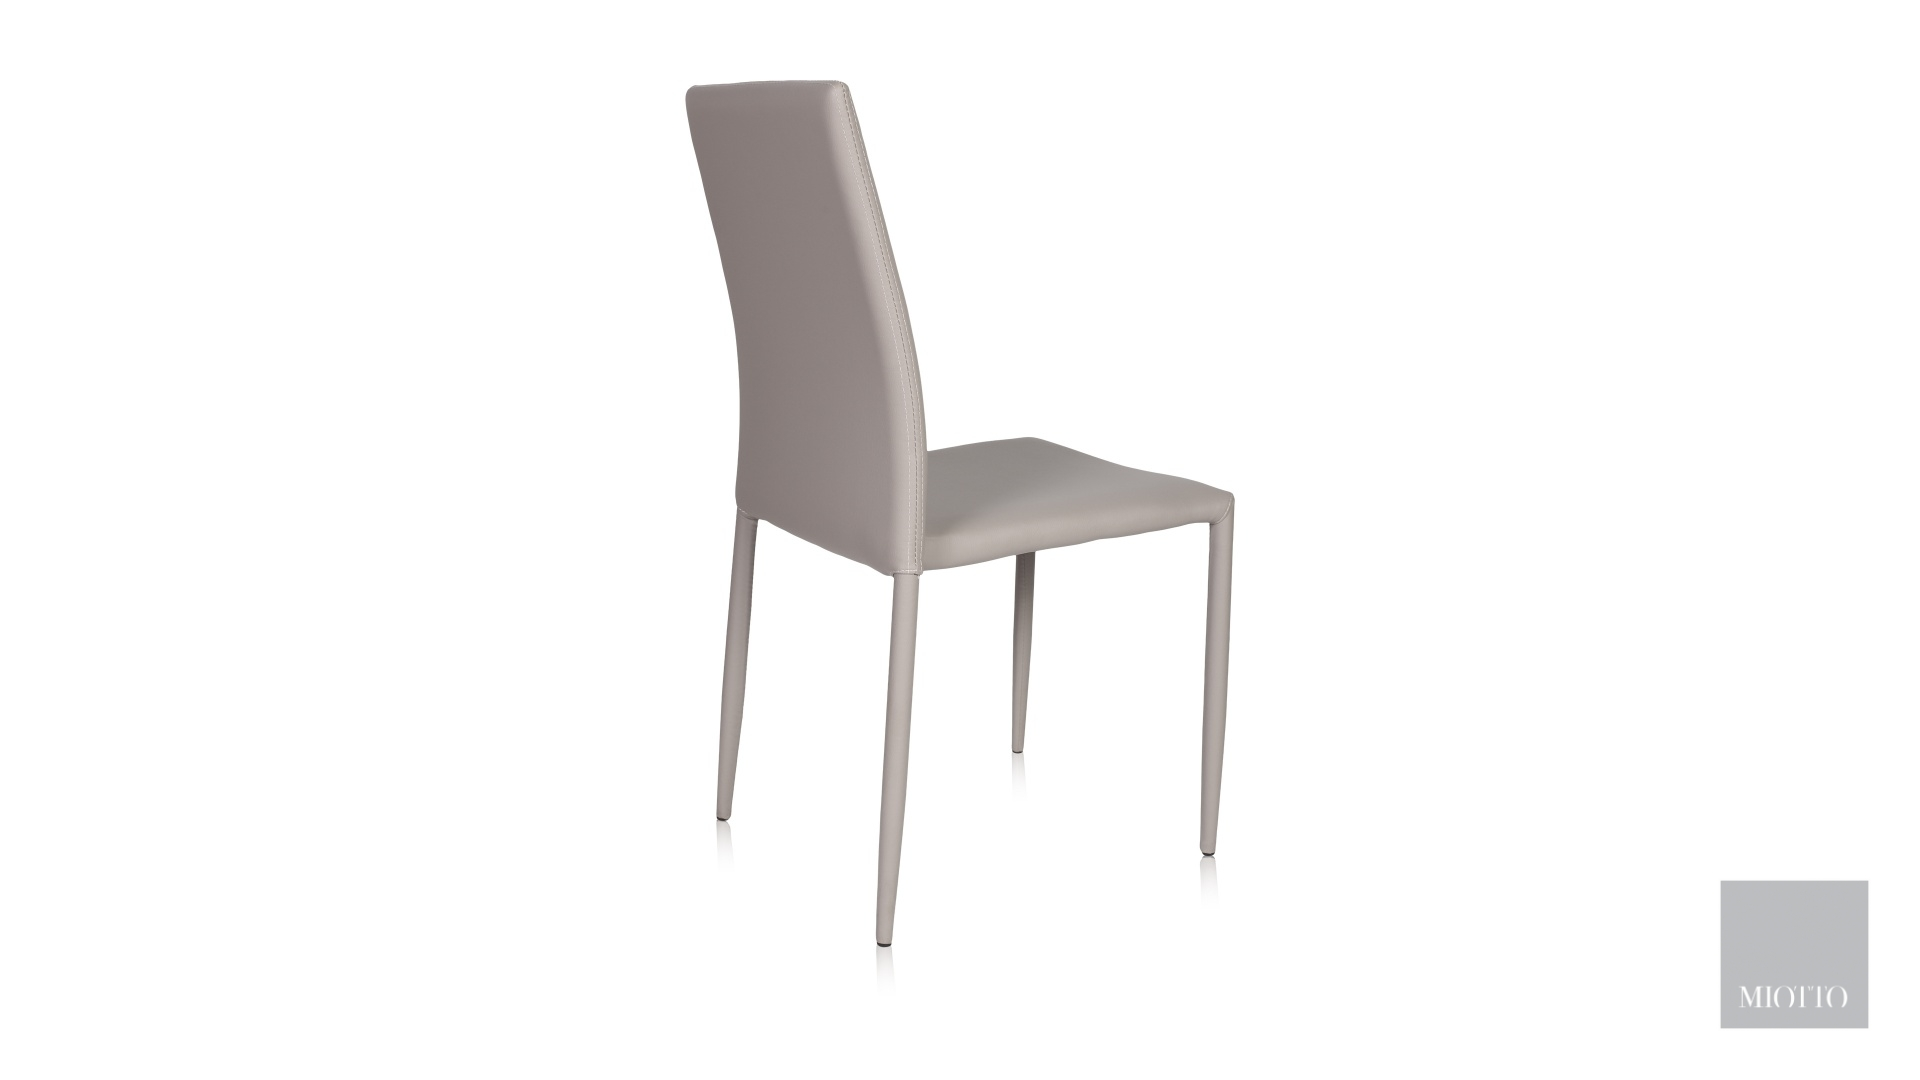 miotto_Lara dining chair pu light grey back miotto furniture